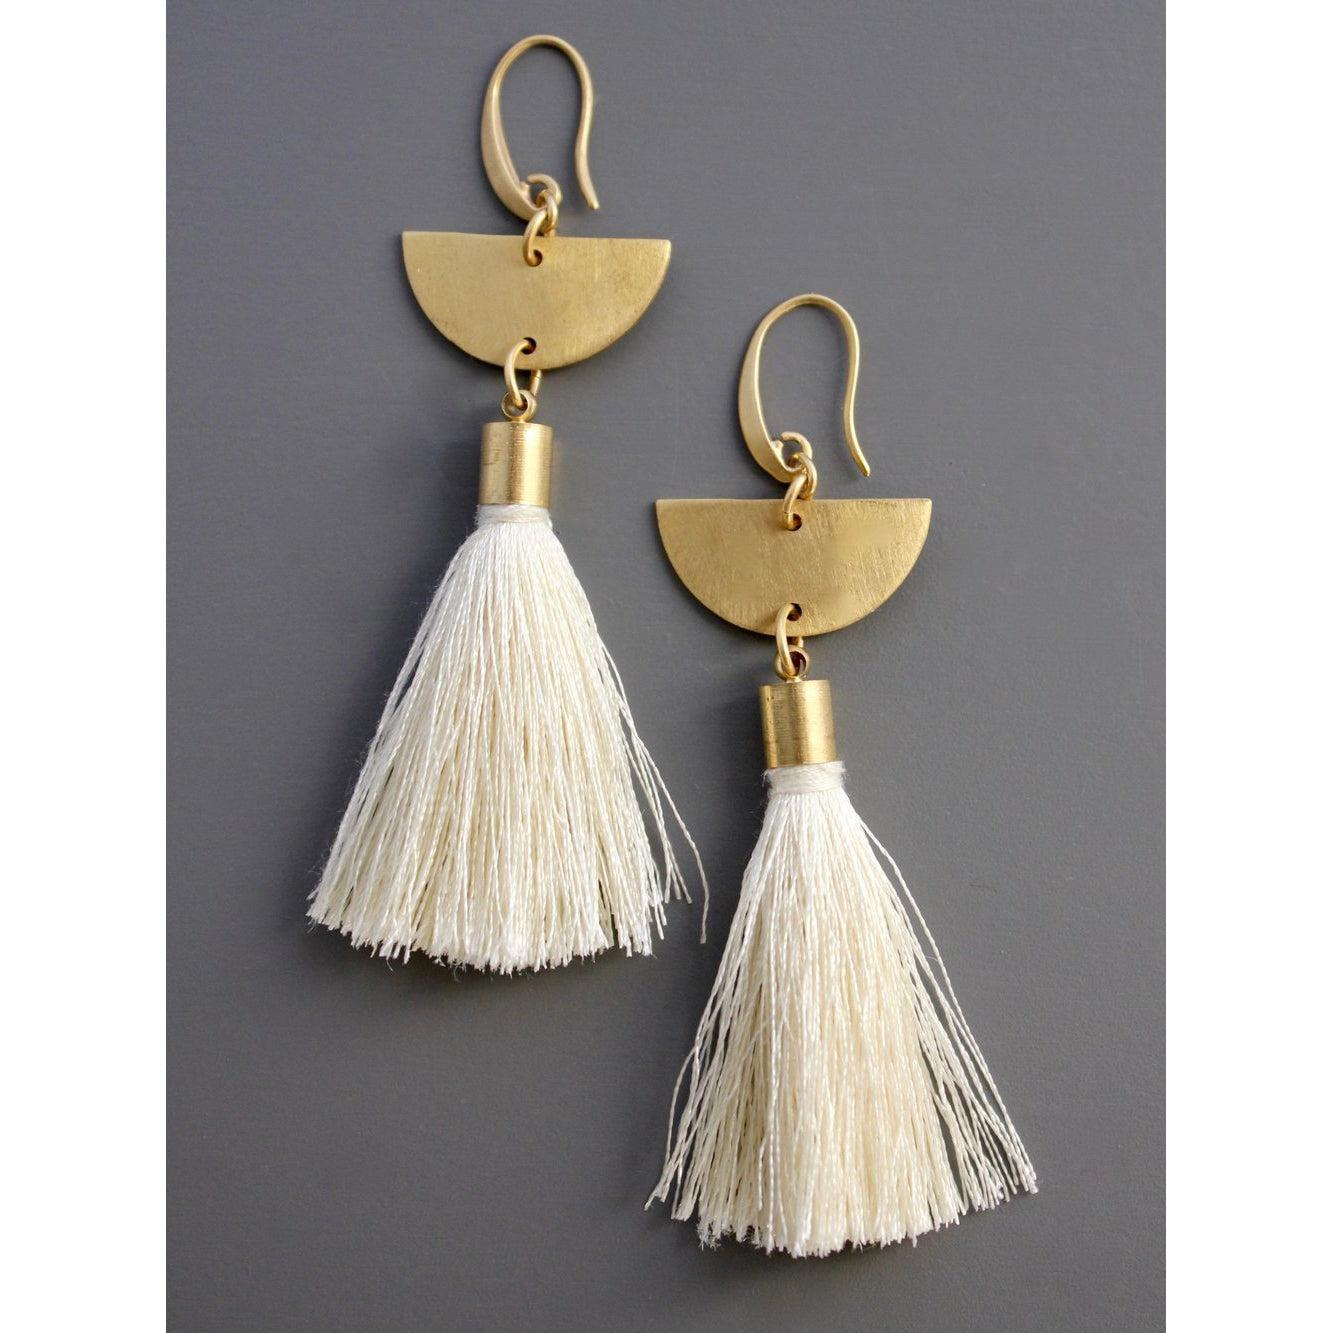 David Aubrey Earrings -da-prse26